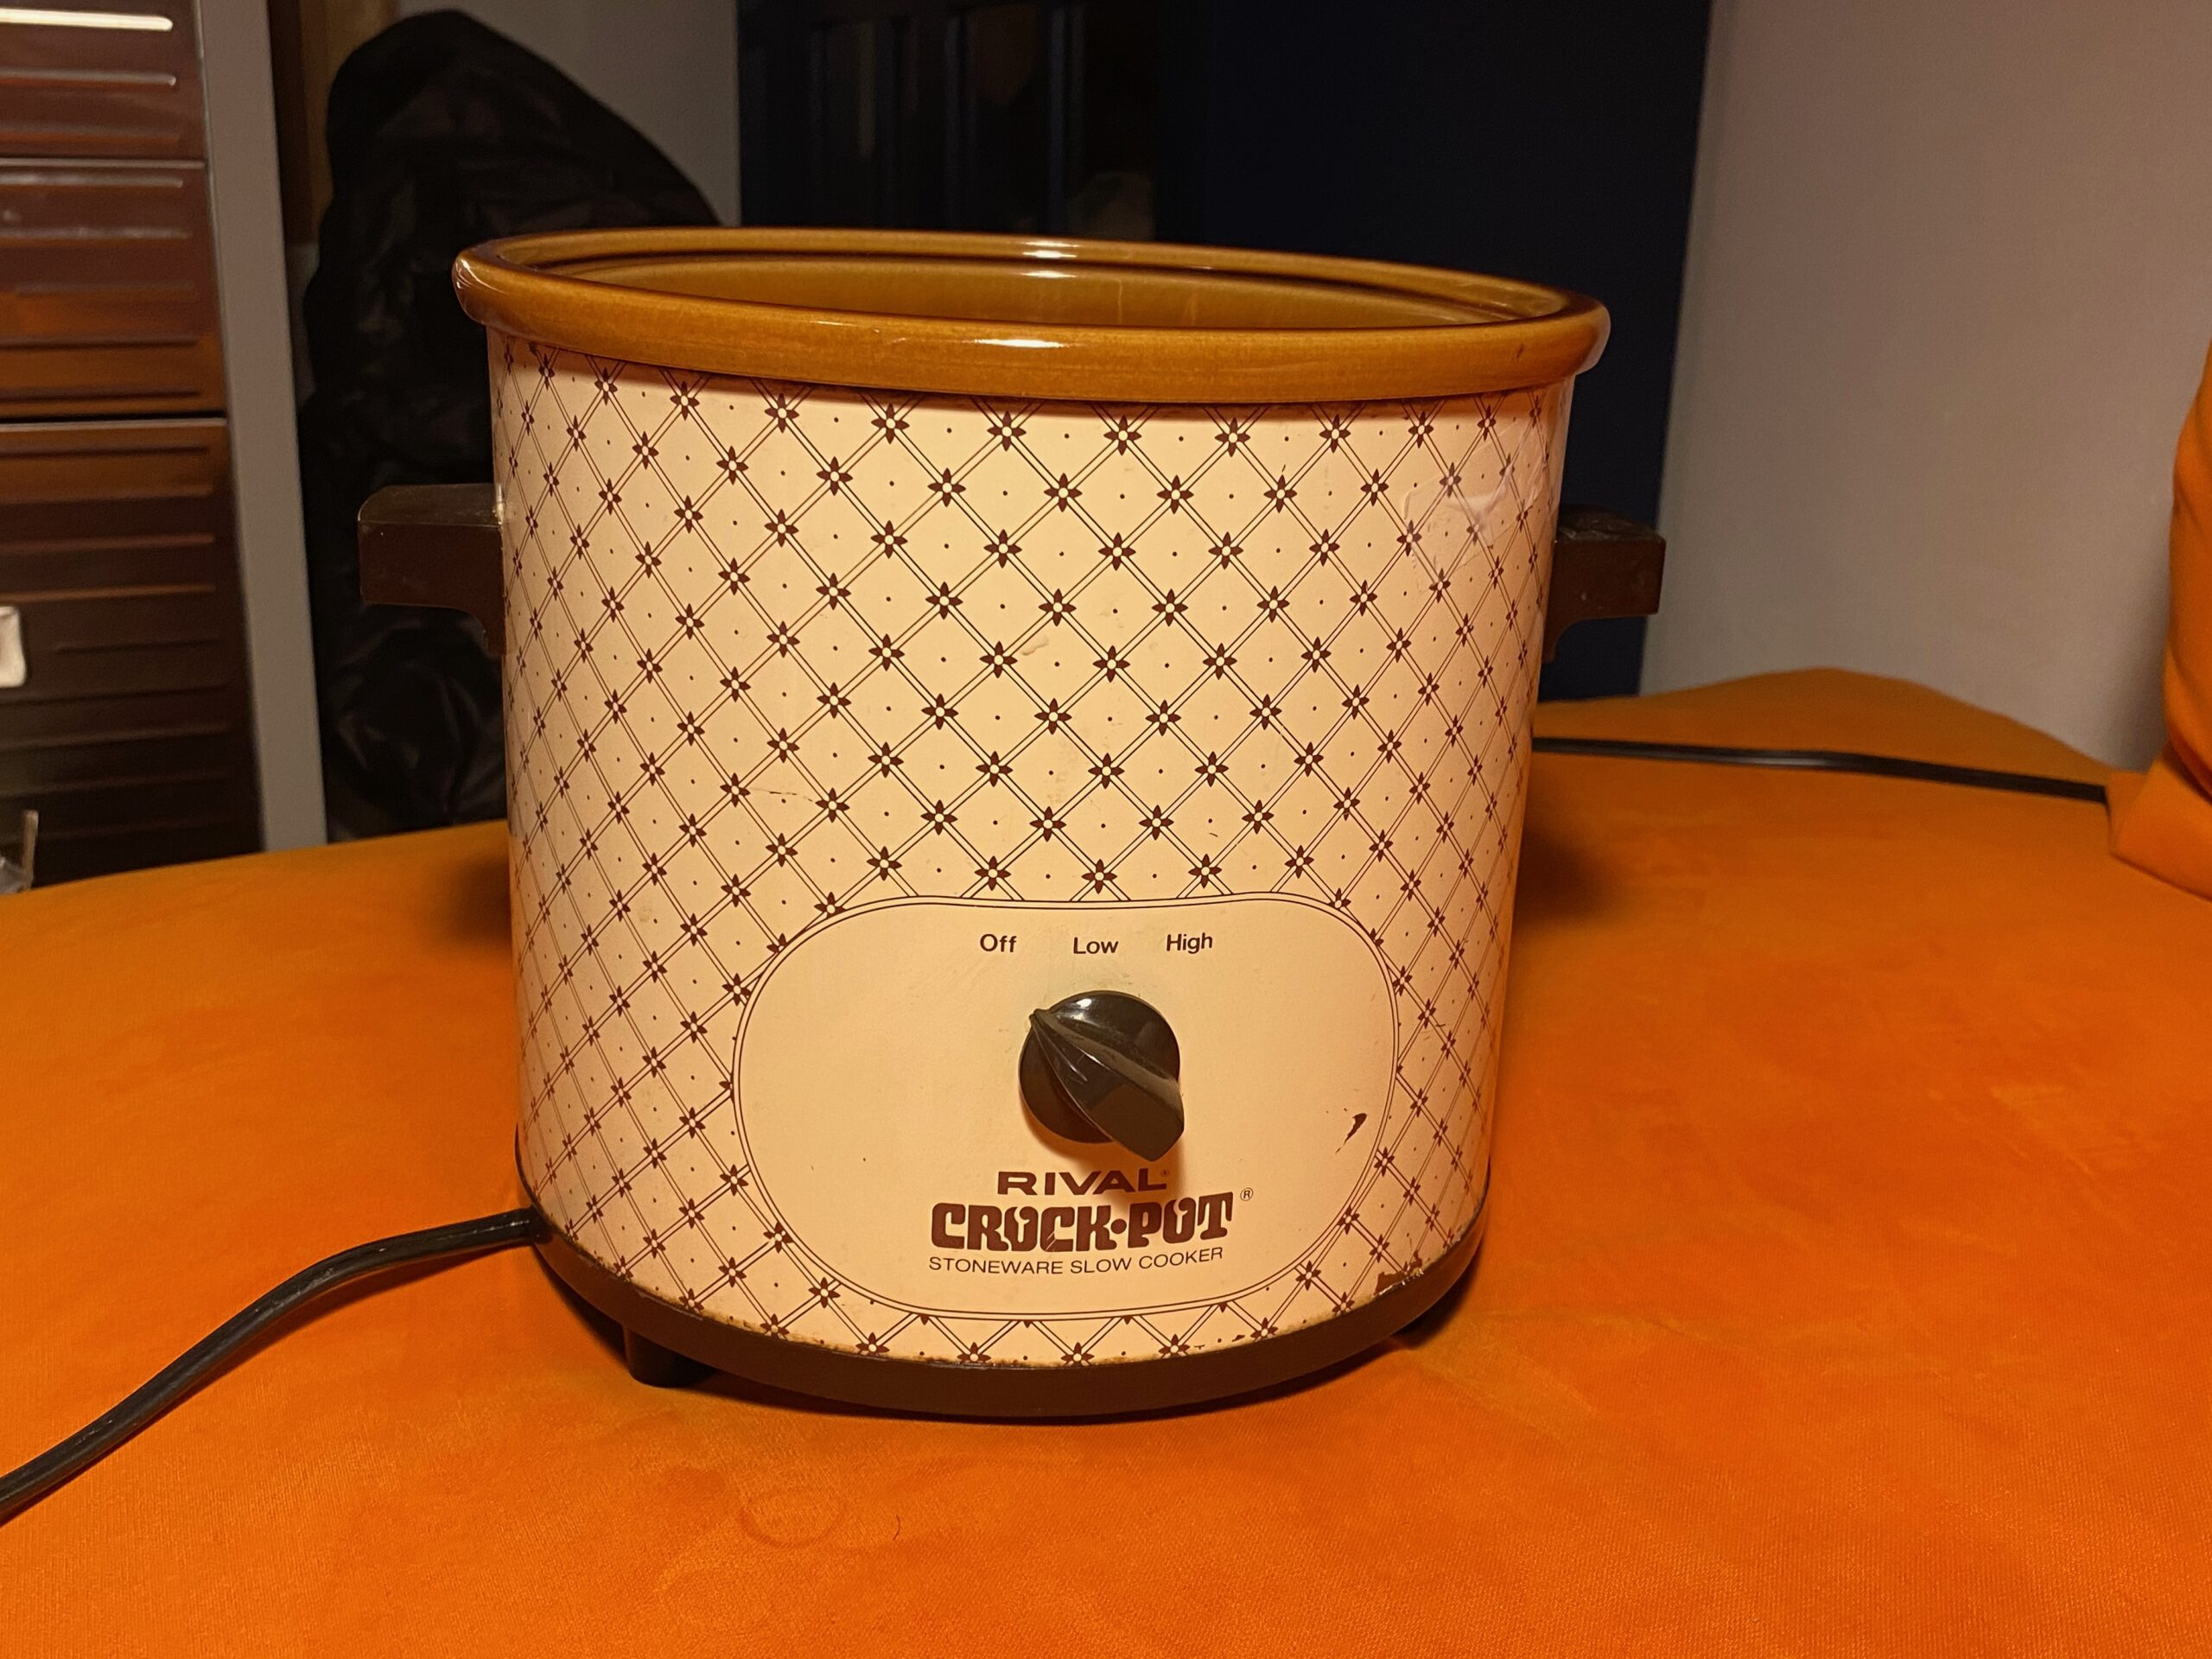 Rival Crock Pot Stoneware Slow Cooker